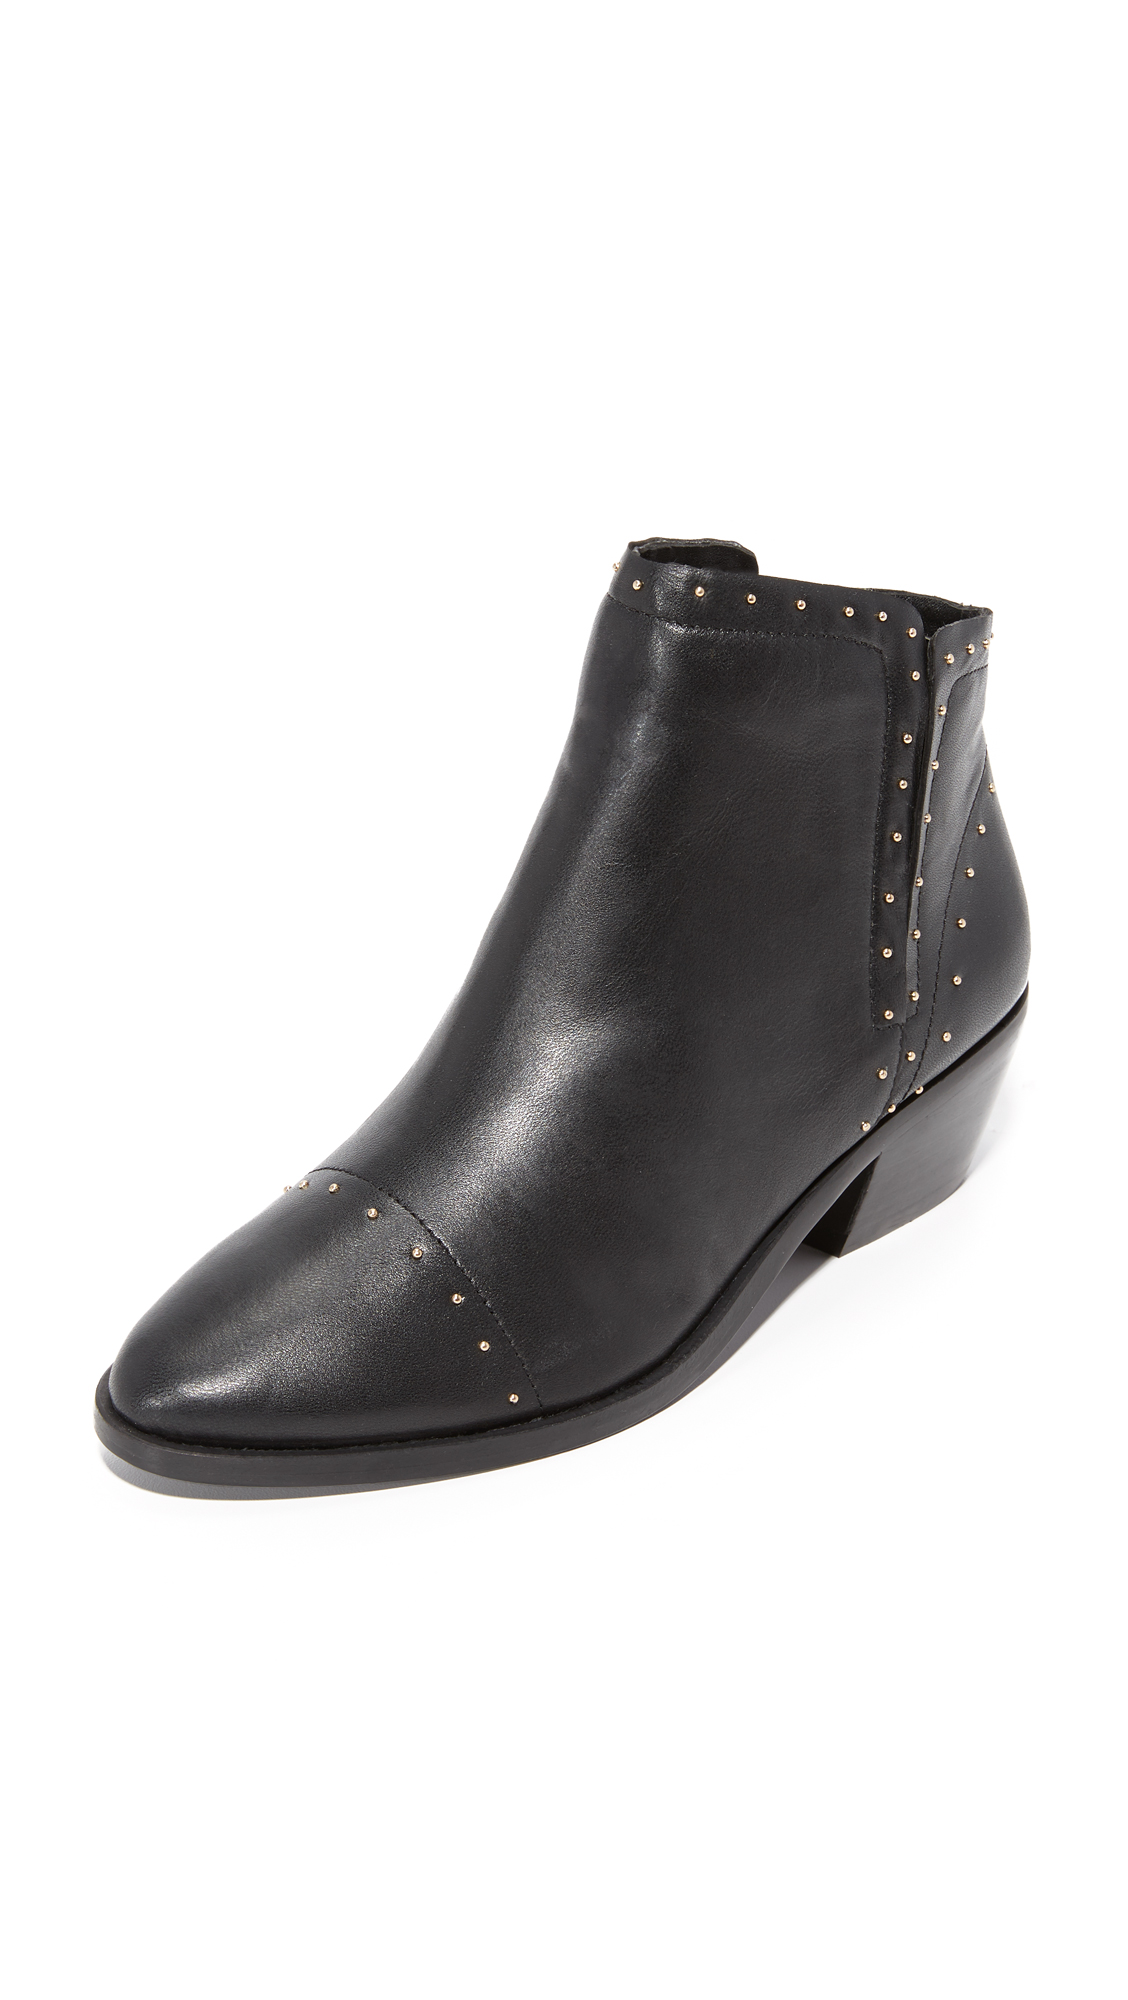 Joie Jacobean Booties - Black